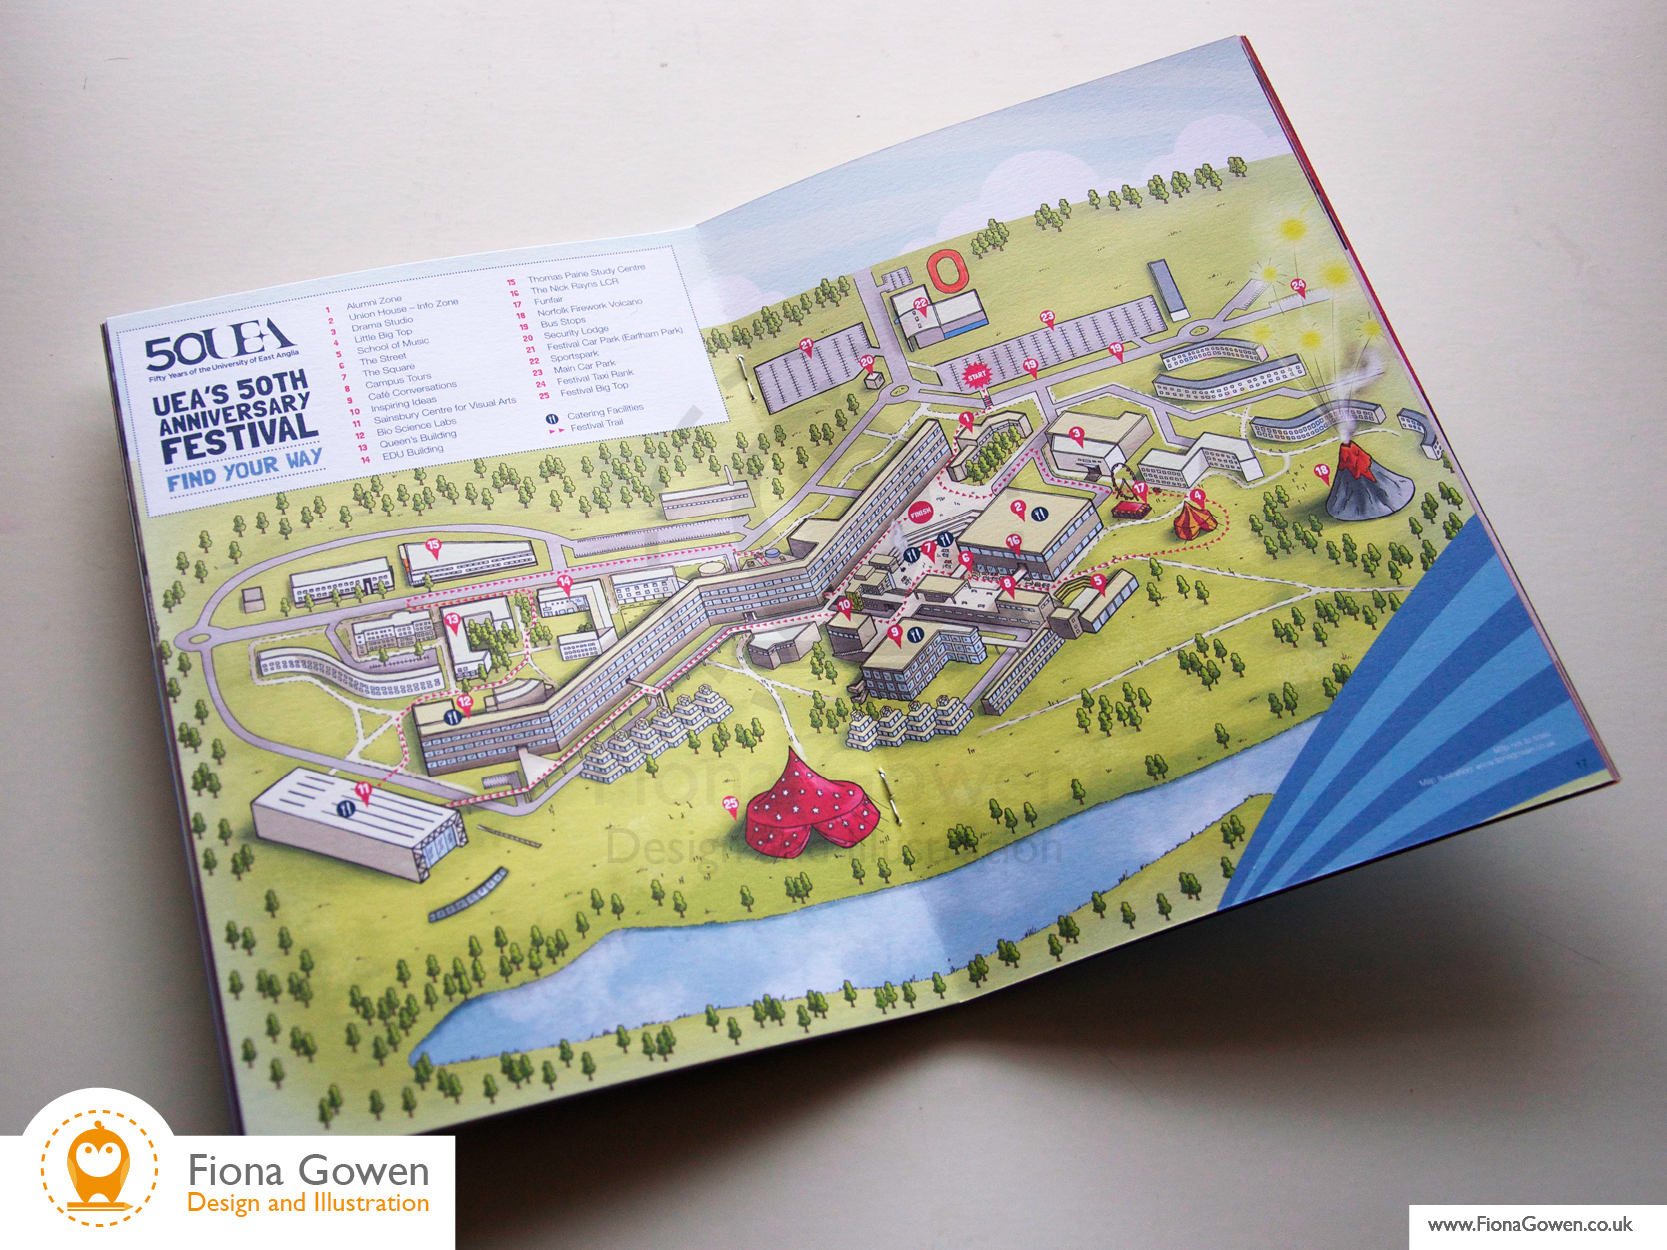 Map Illustration of University of East Anglia UEA by Fiona Gowen reproduced in 50th anniversary event booklet